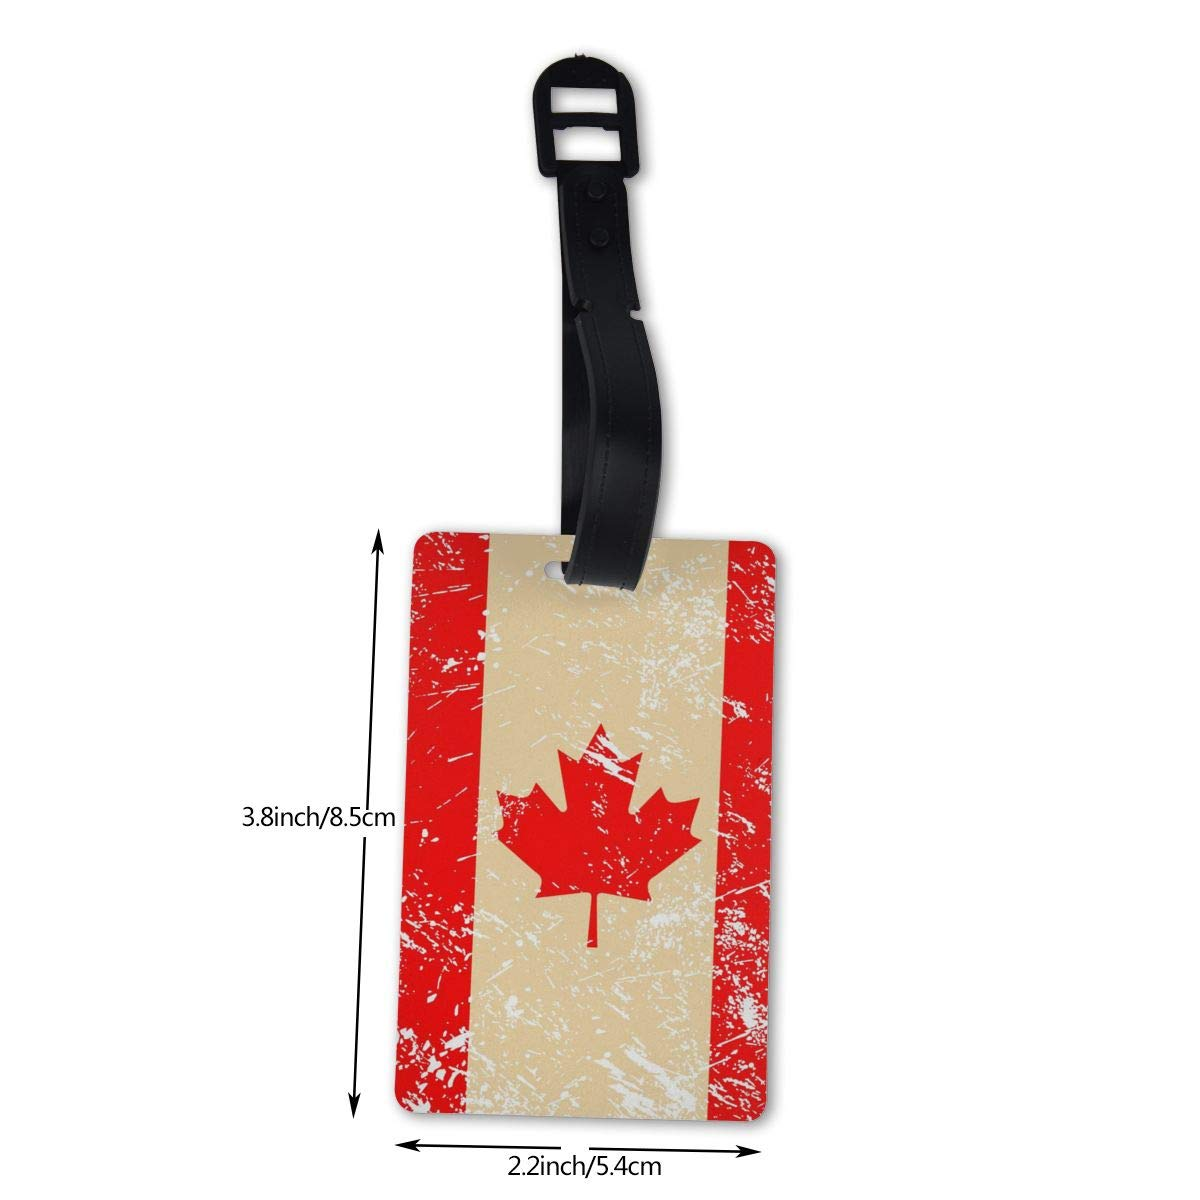 NB UUD Canada Retro Flag Travel Luggage Tag Cool Employees Card Luggage Tag Holders Travel ID Identification Labels for Baggage Suitcases Bags